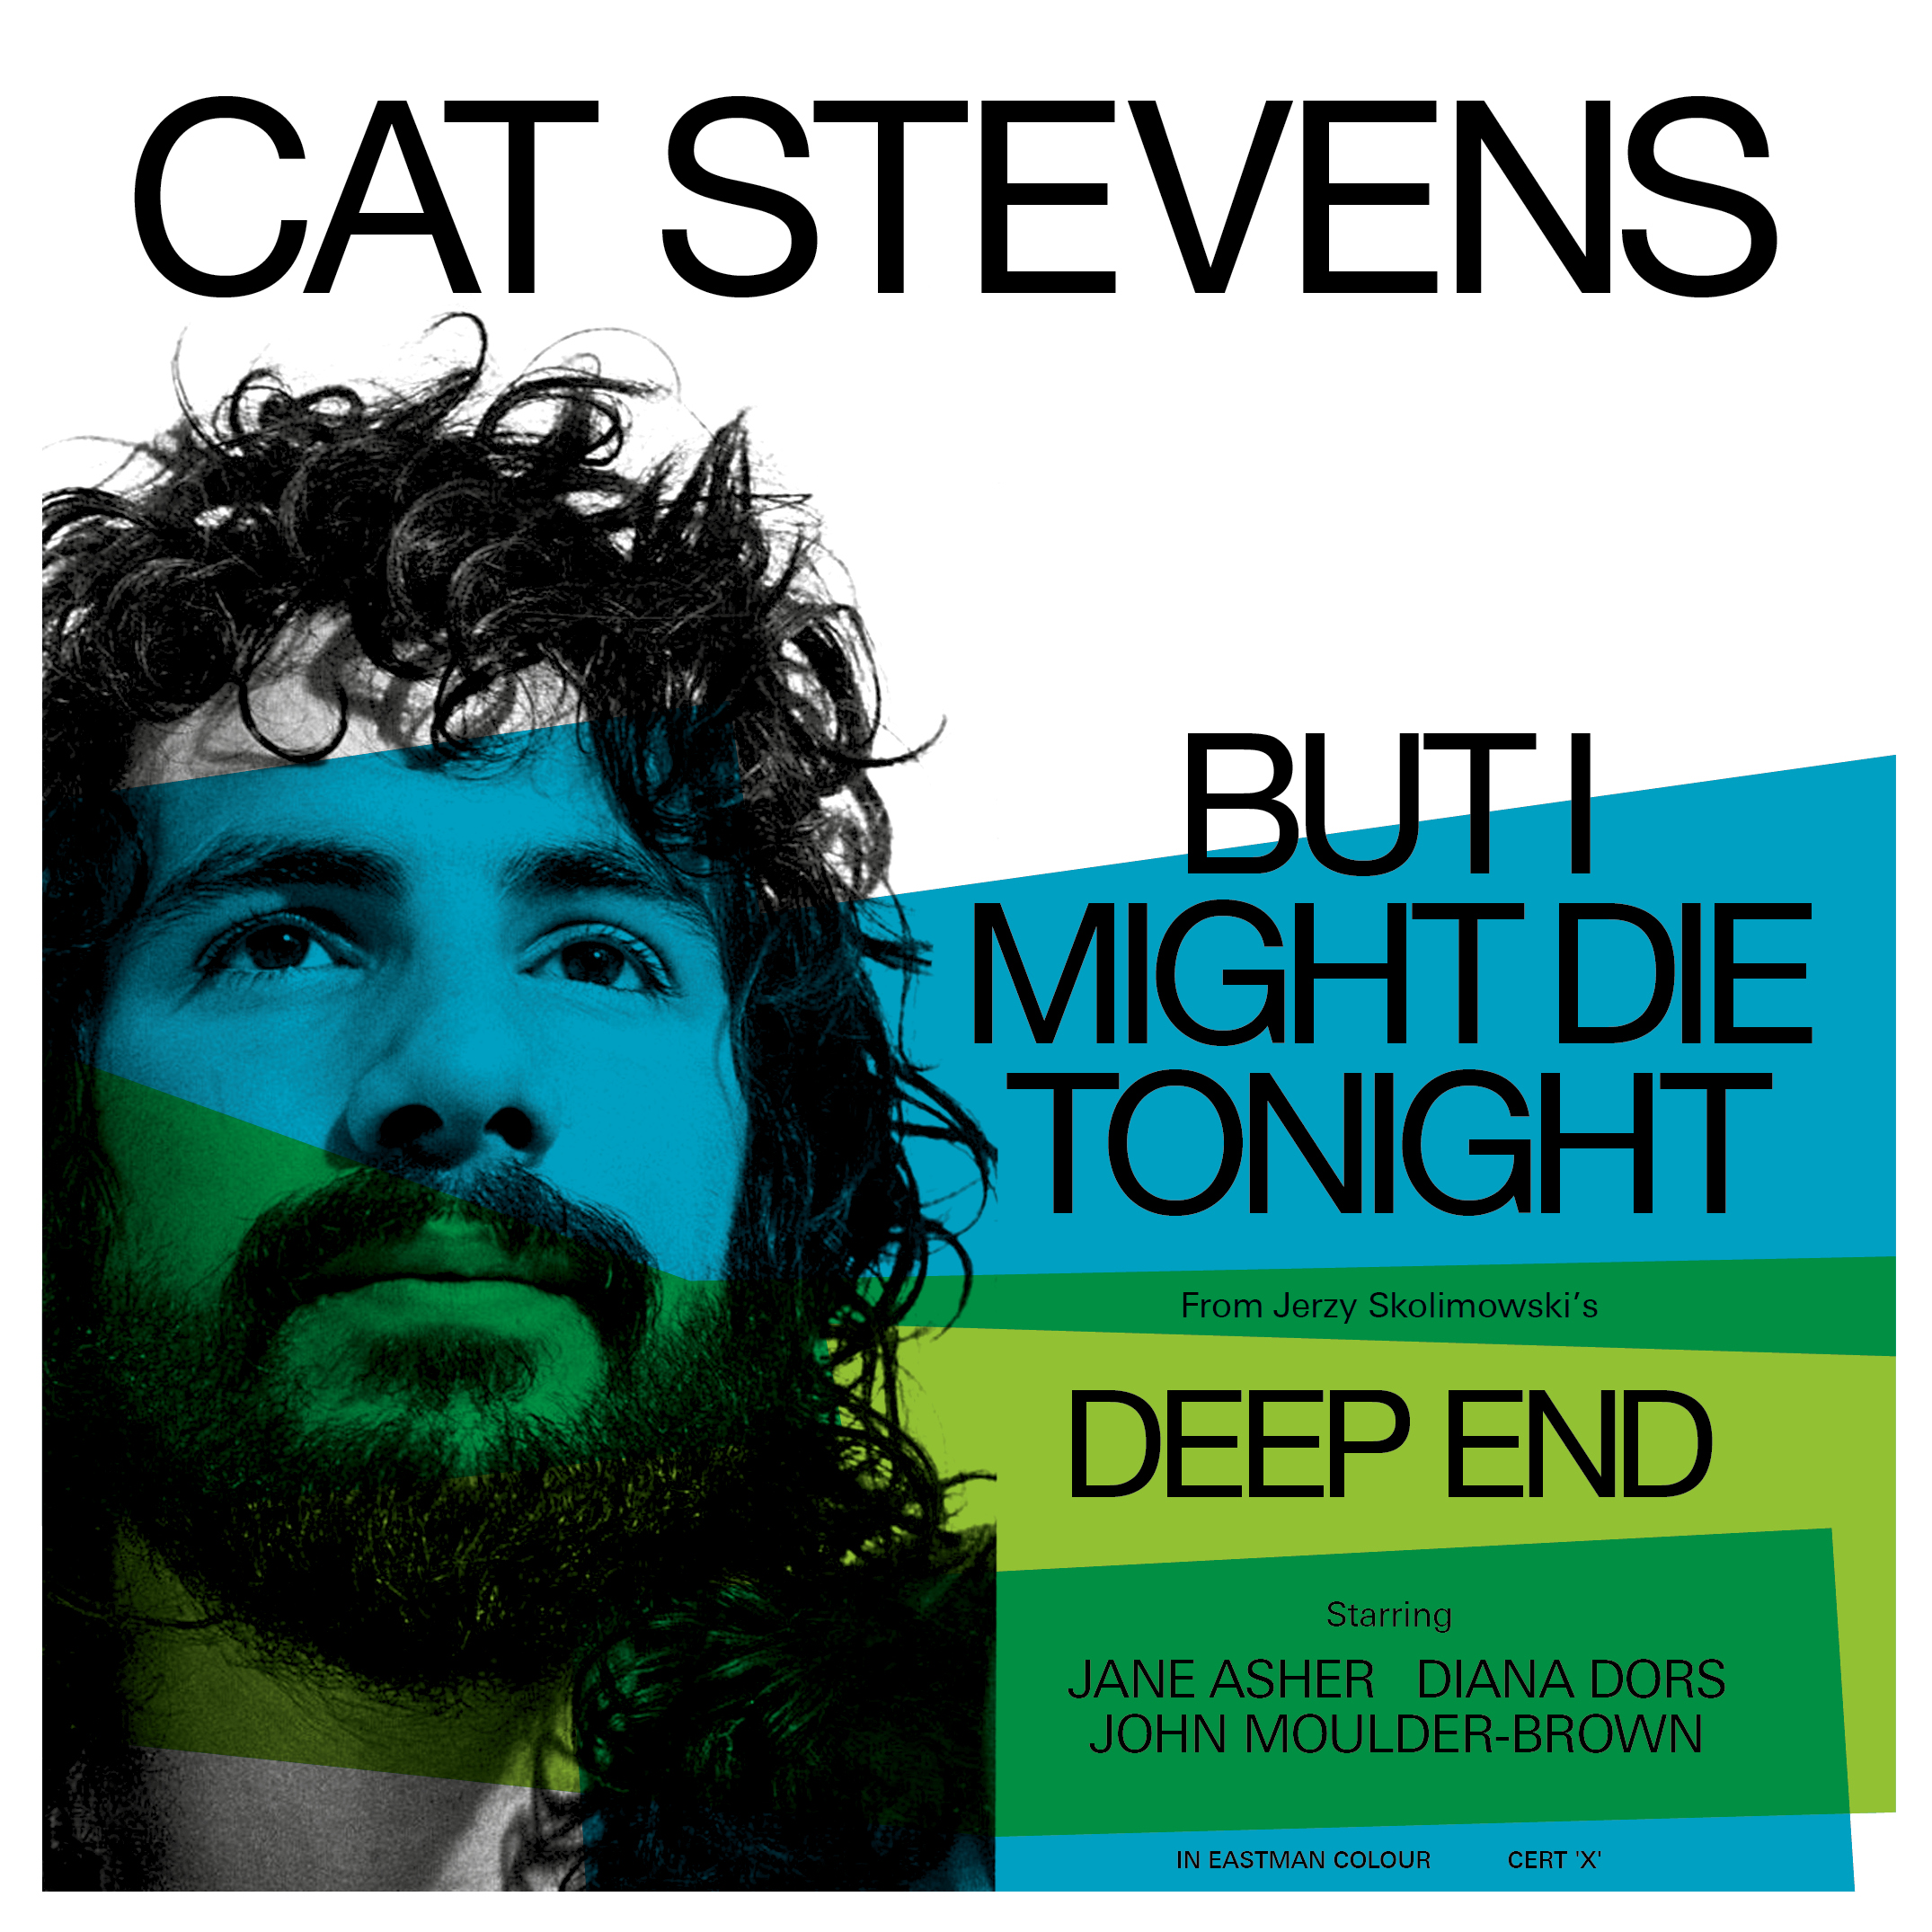 Yusuf / Cat Stevens - But I Might Die Tonight [RSD Drops Aug 2020]